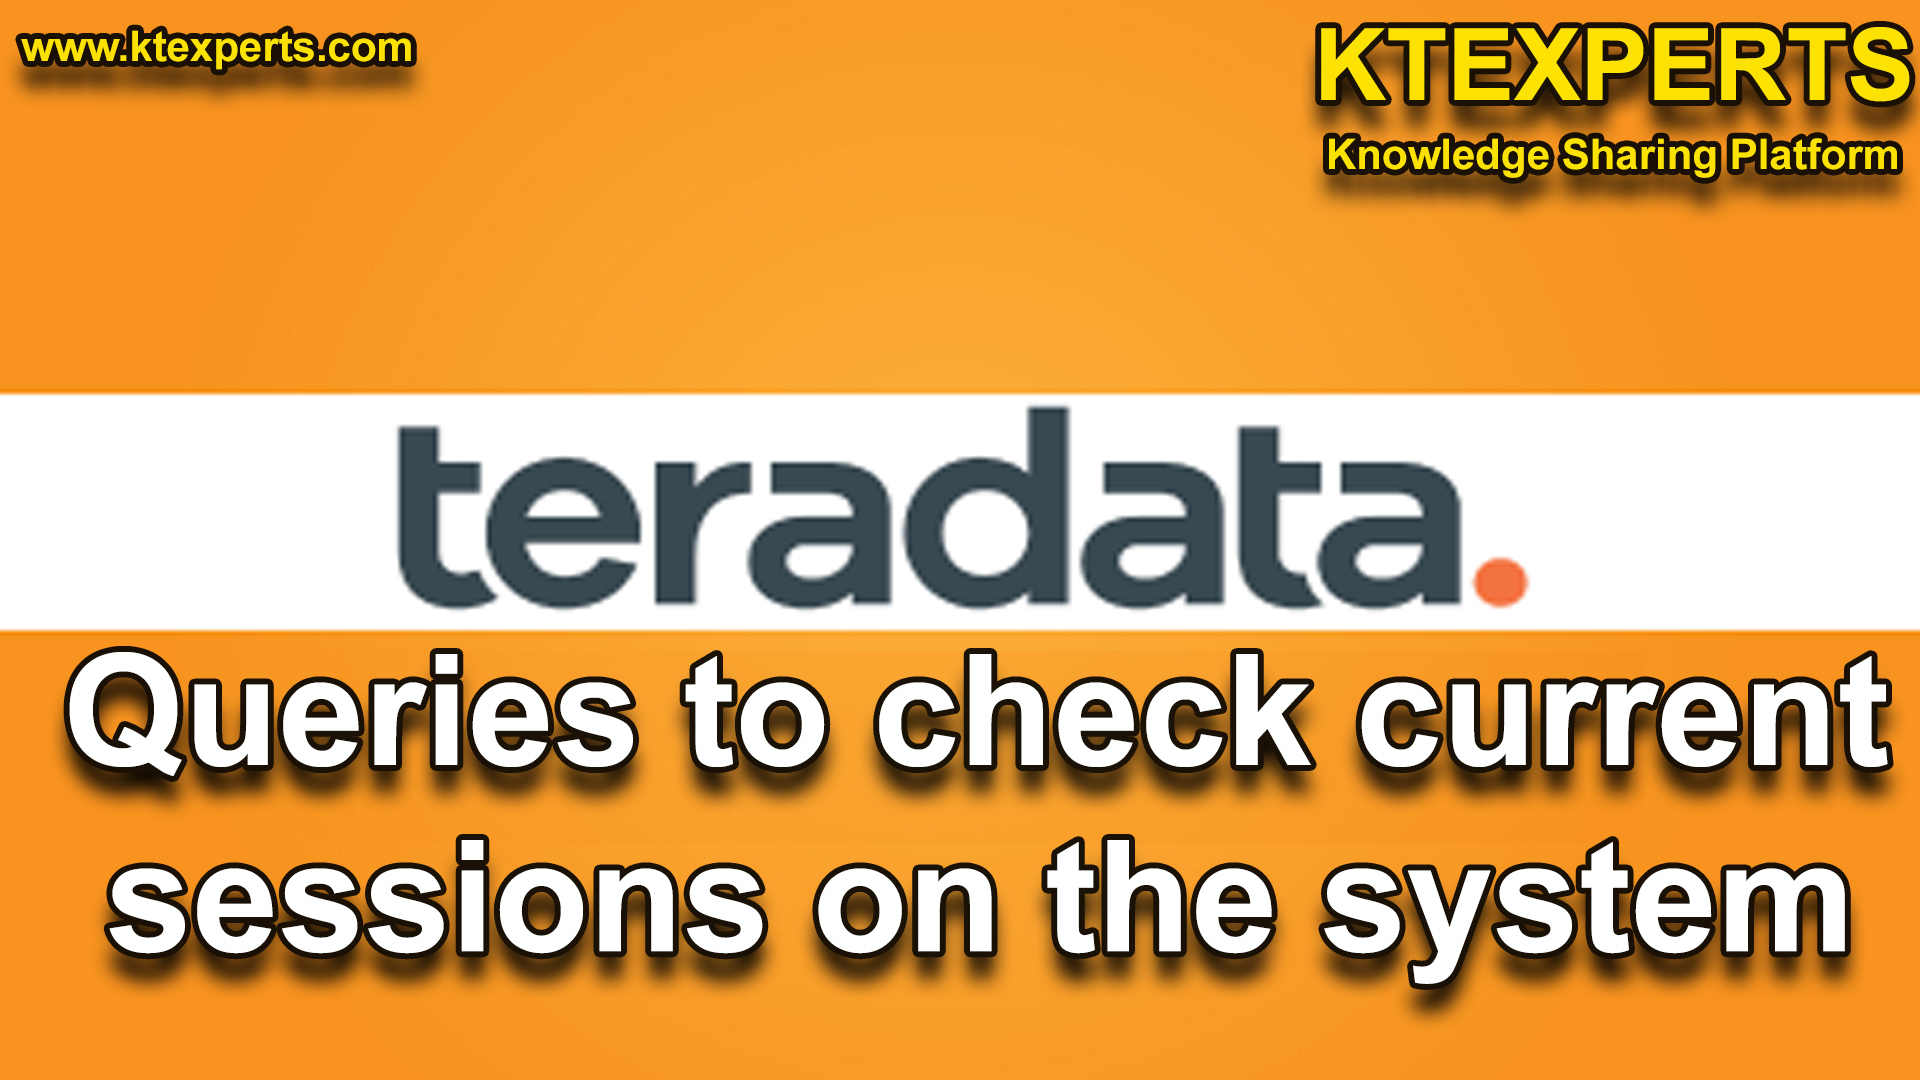 Queries to check current sessions in Teradata